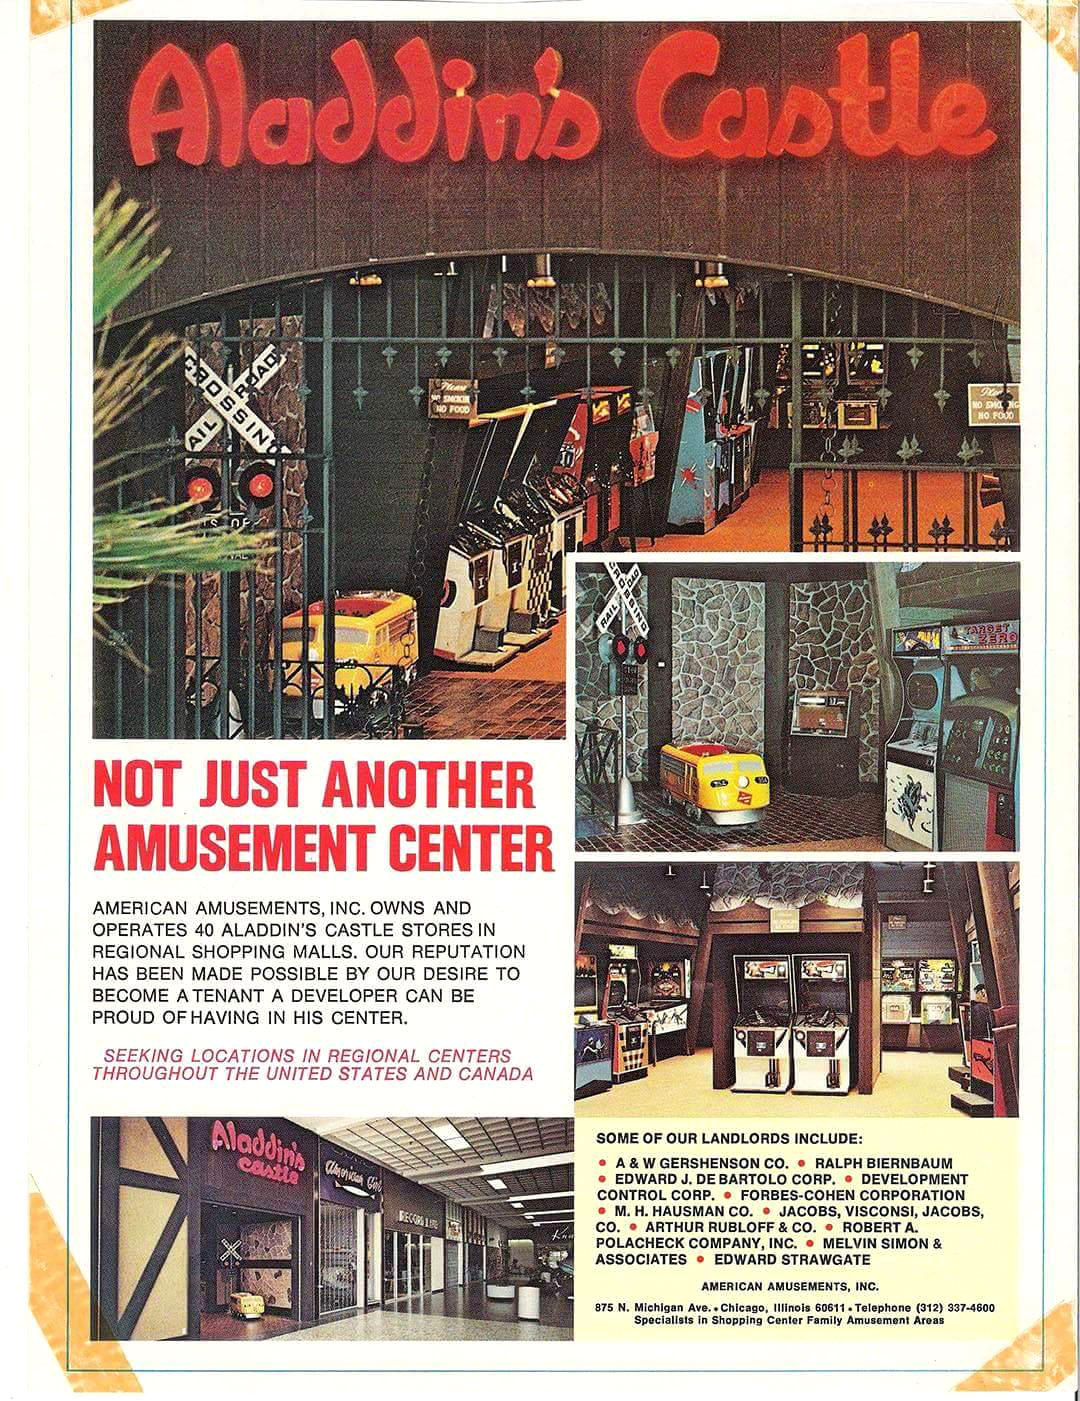 Aladdins Castle Arcade ad